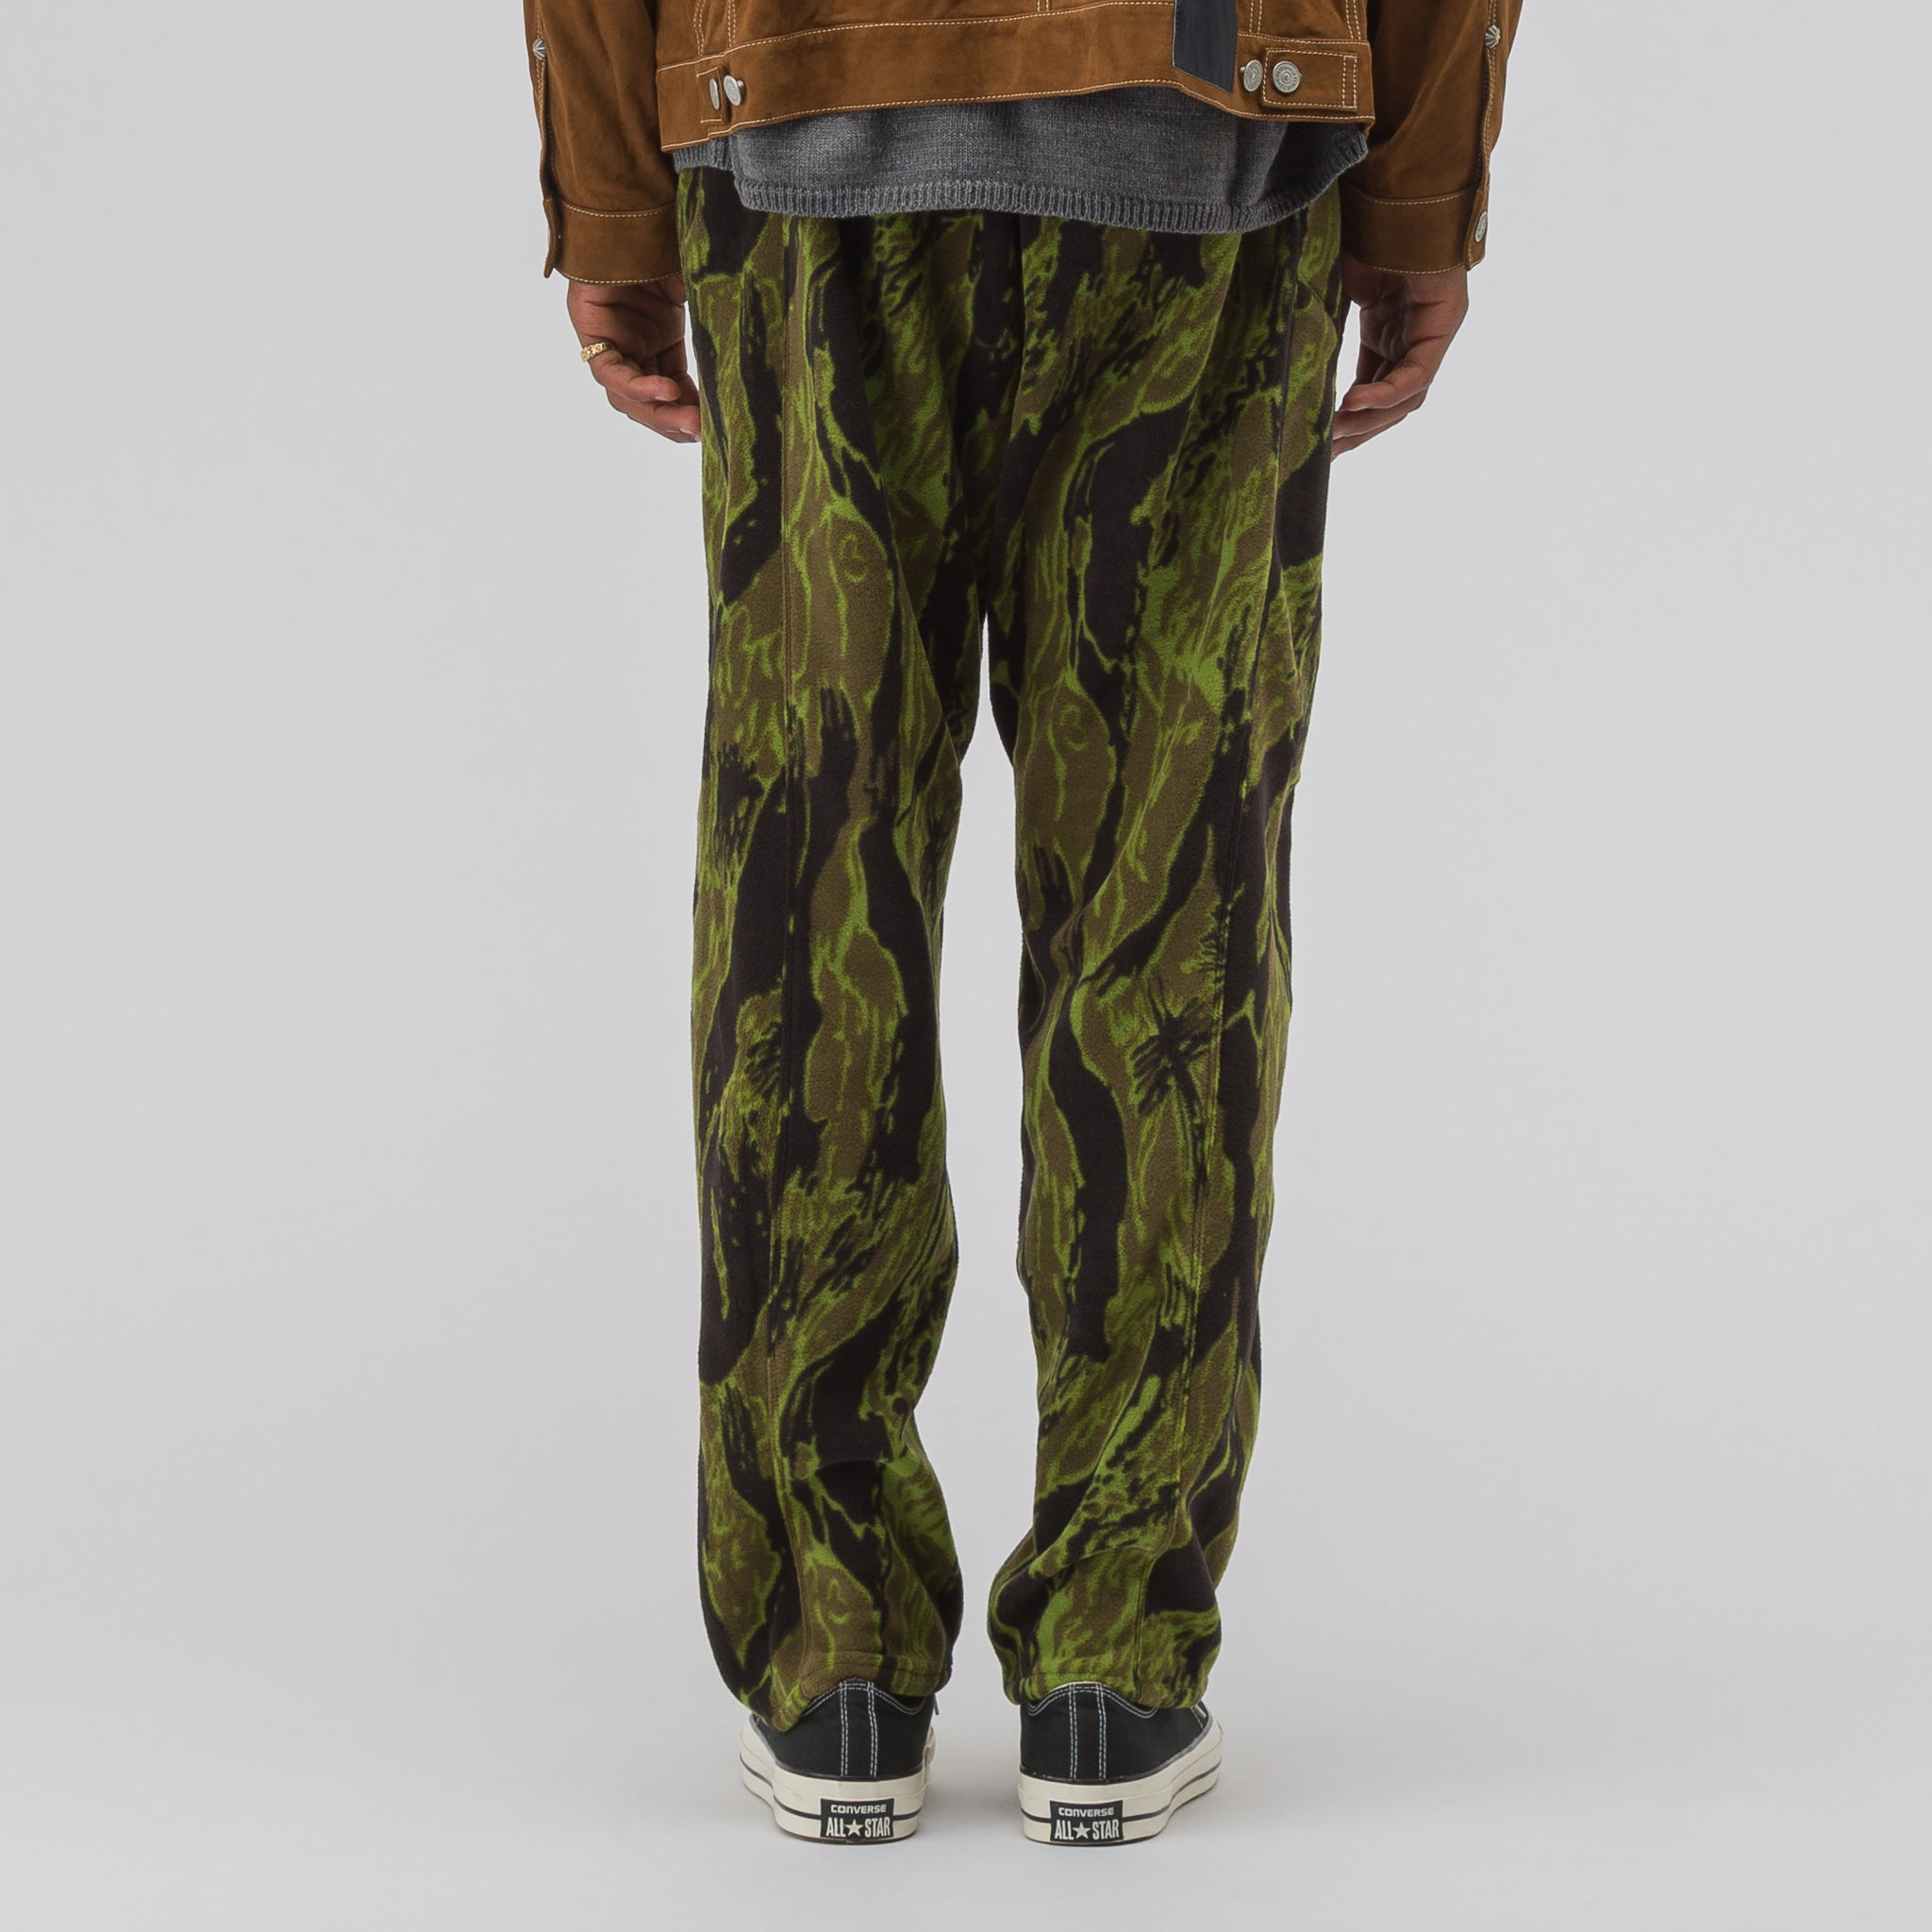 Seam Pocket Pant in Olive